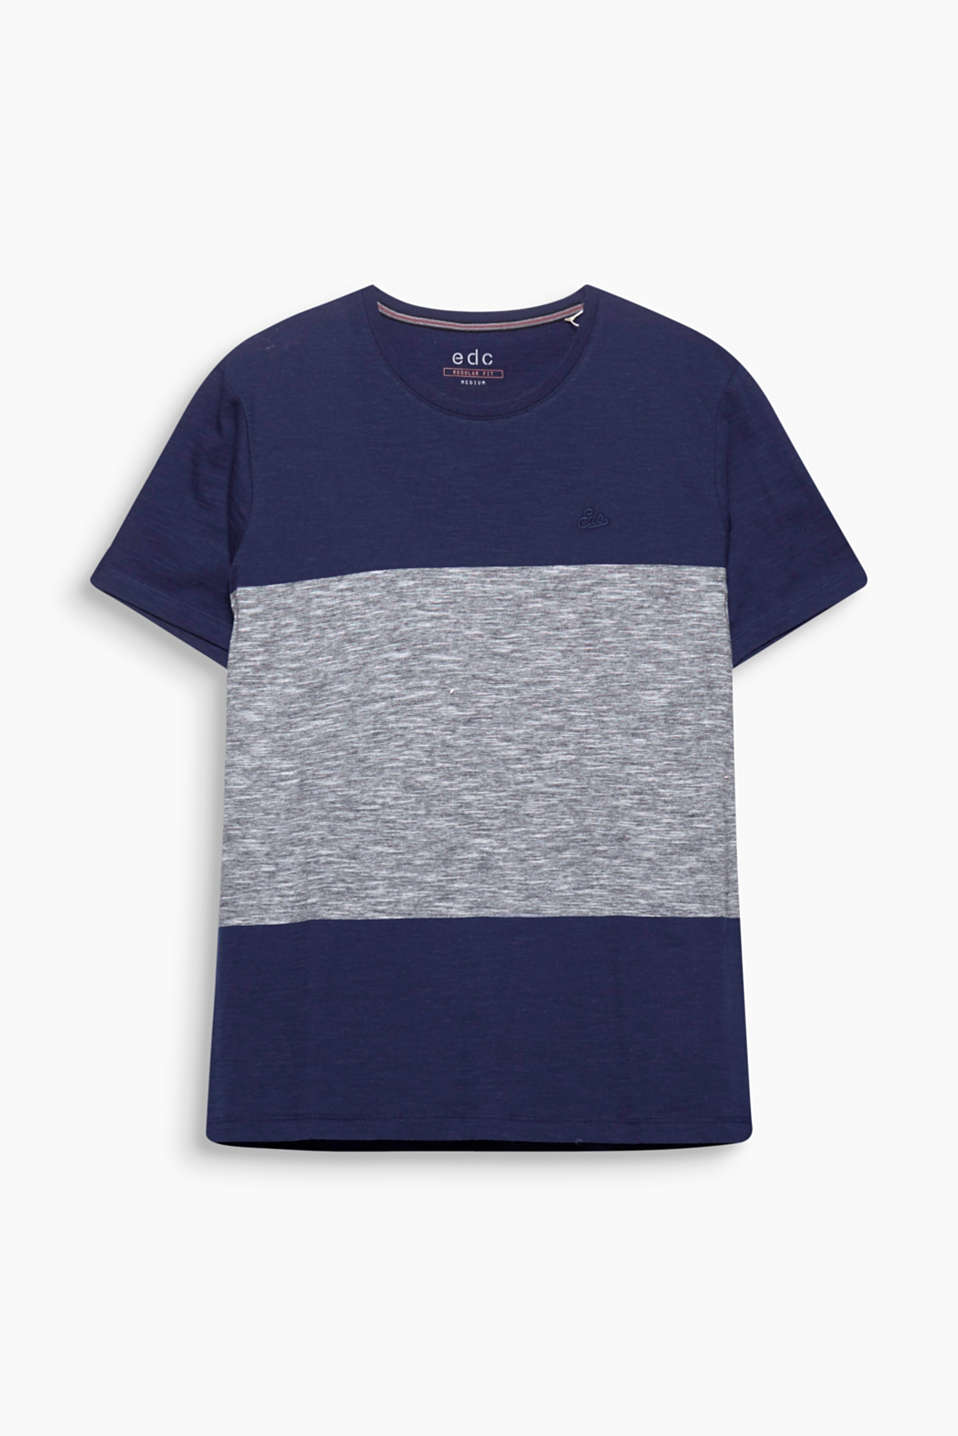 Block stripes in an exciting texture mix make this T-shirt an essential for your street look.